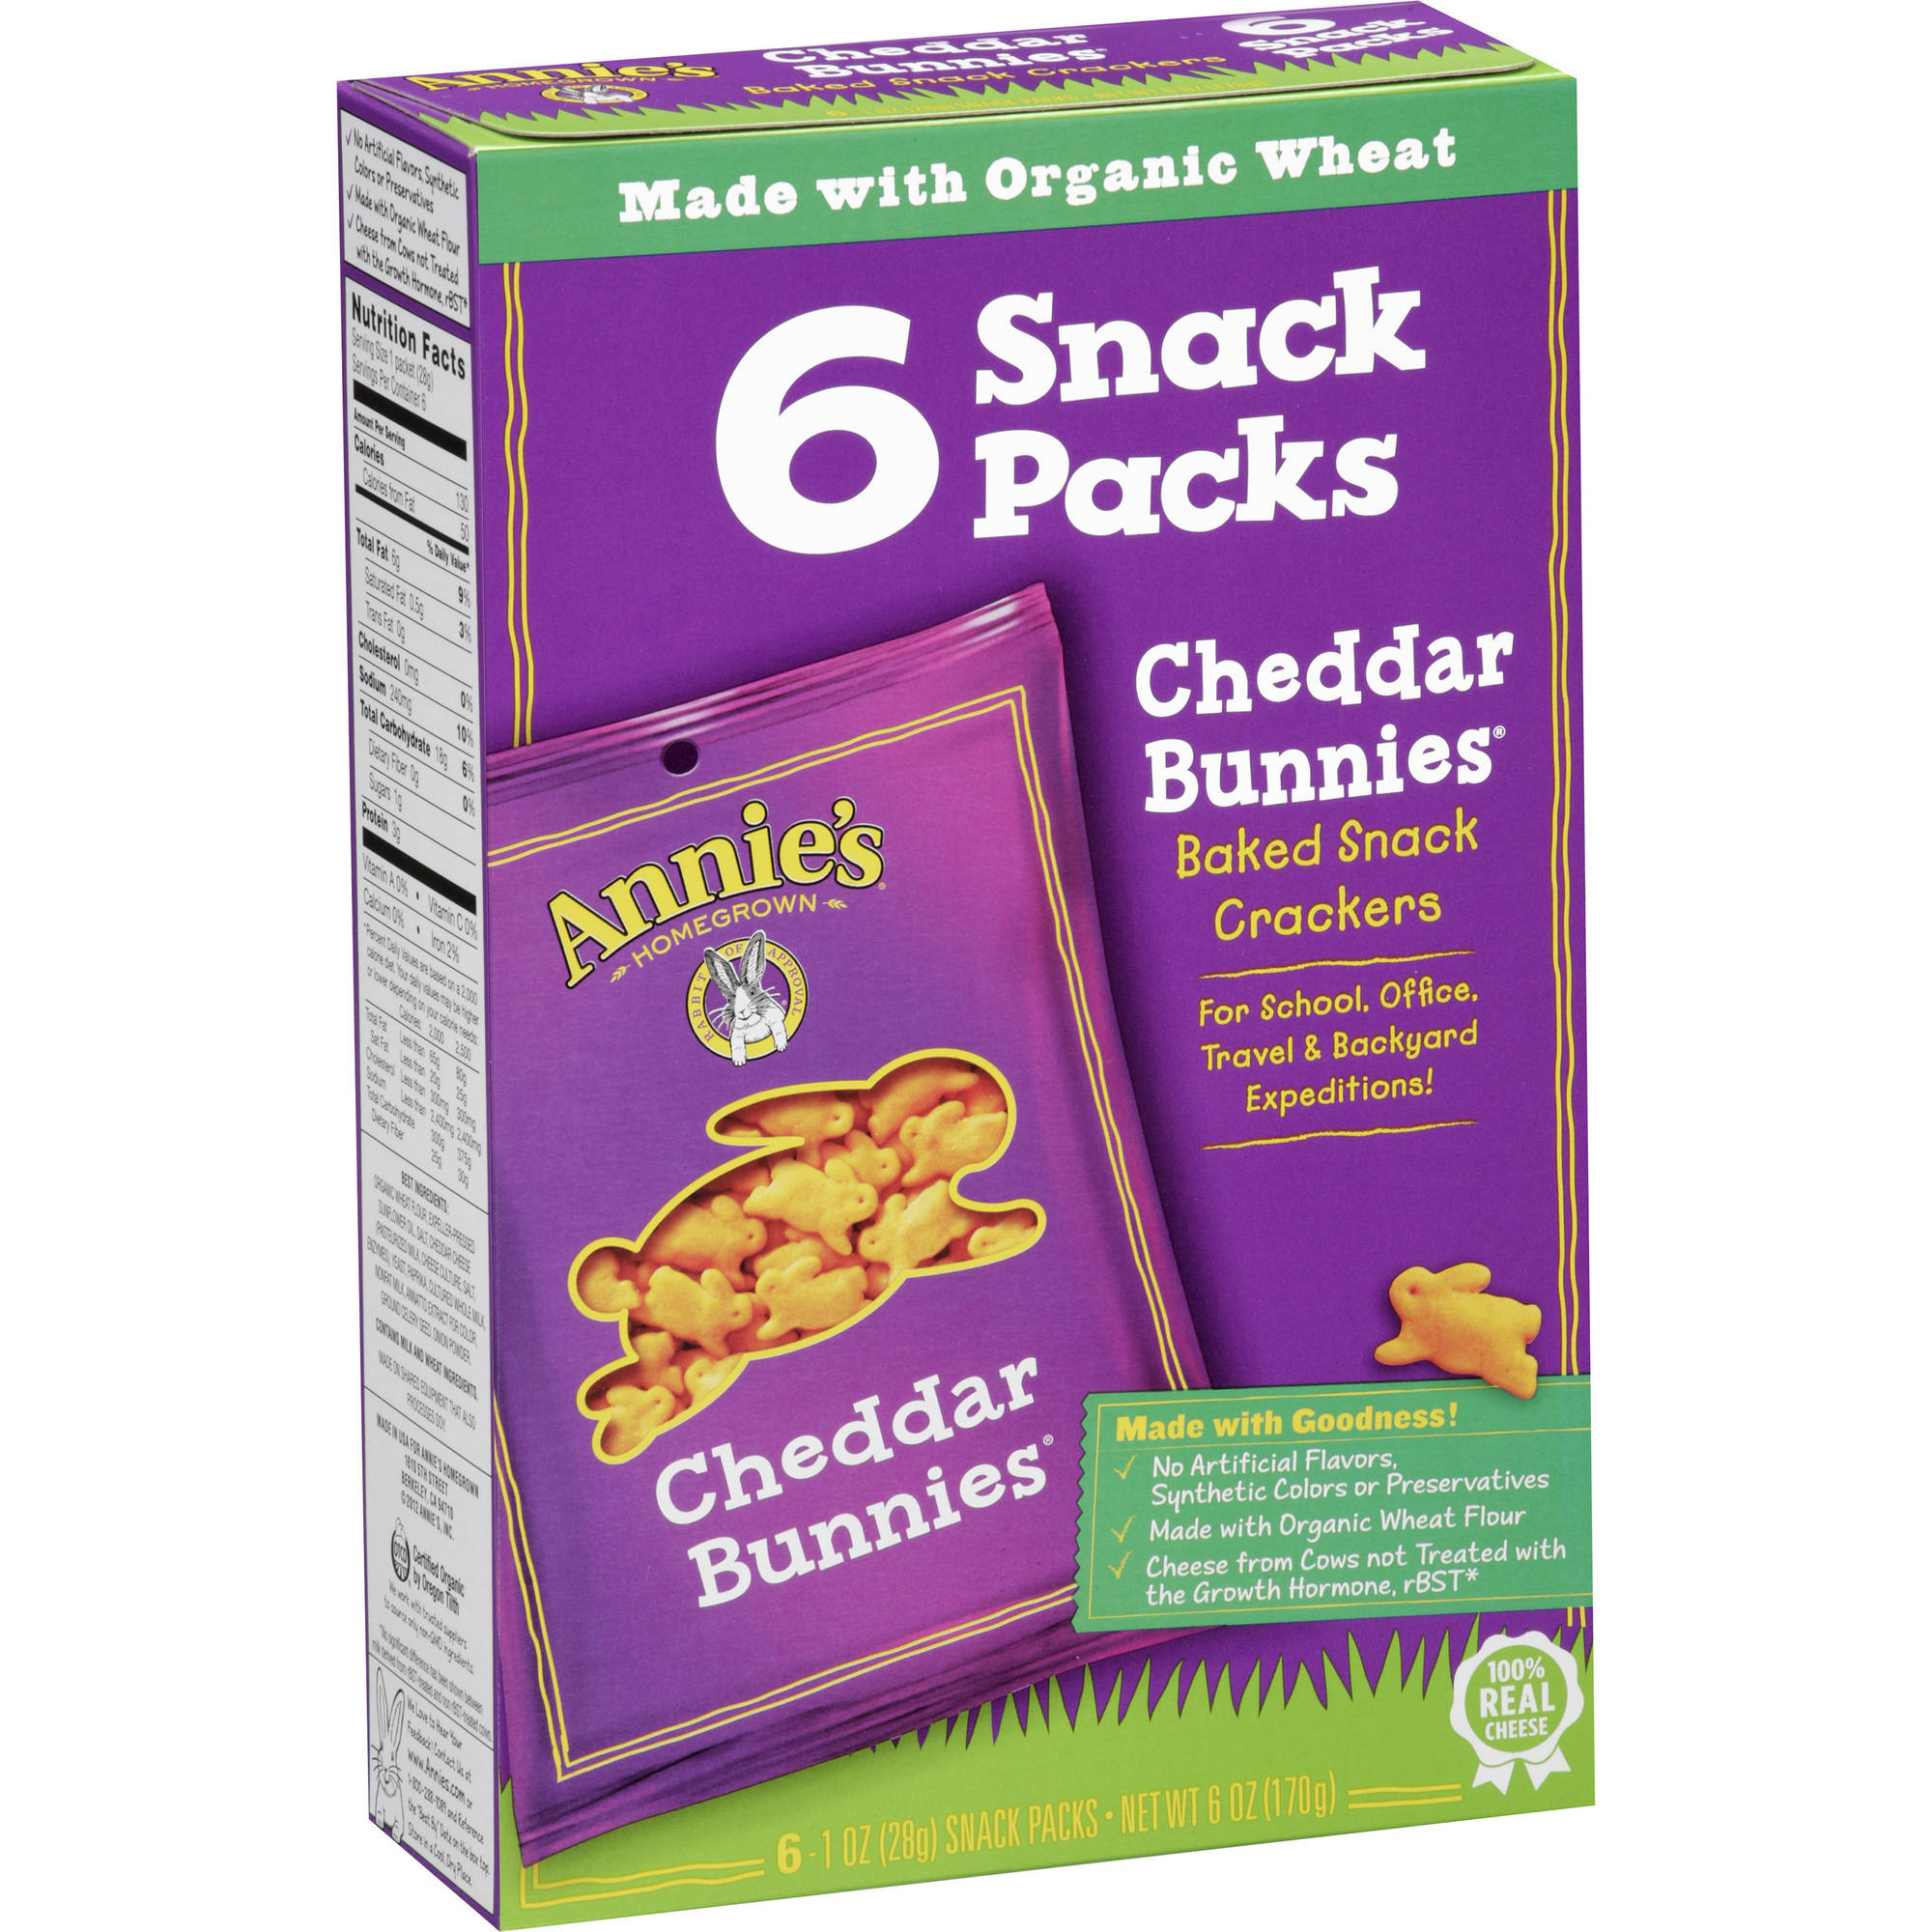 Annie's Homegrown Cheddar Bunnies Baked Snack Crackers, 1 oz, 6 count (Pack of 6)